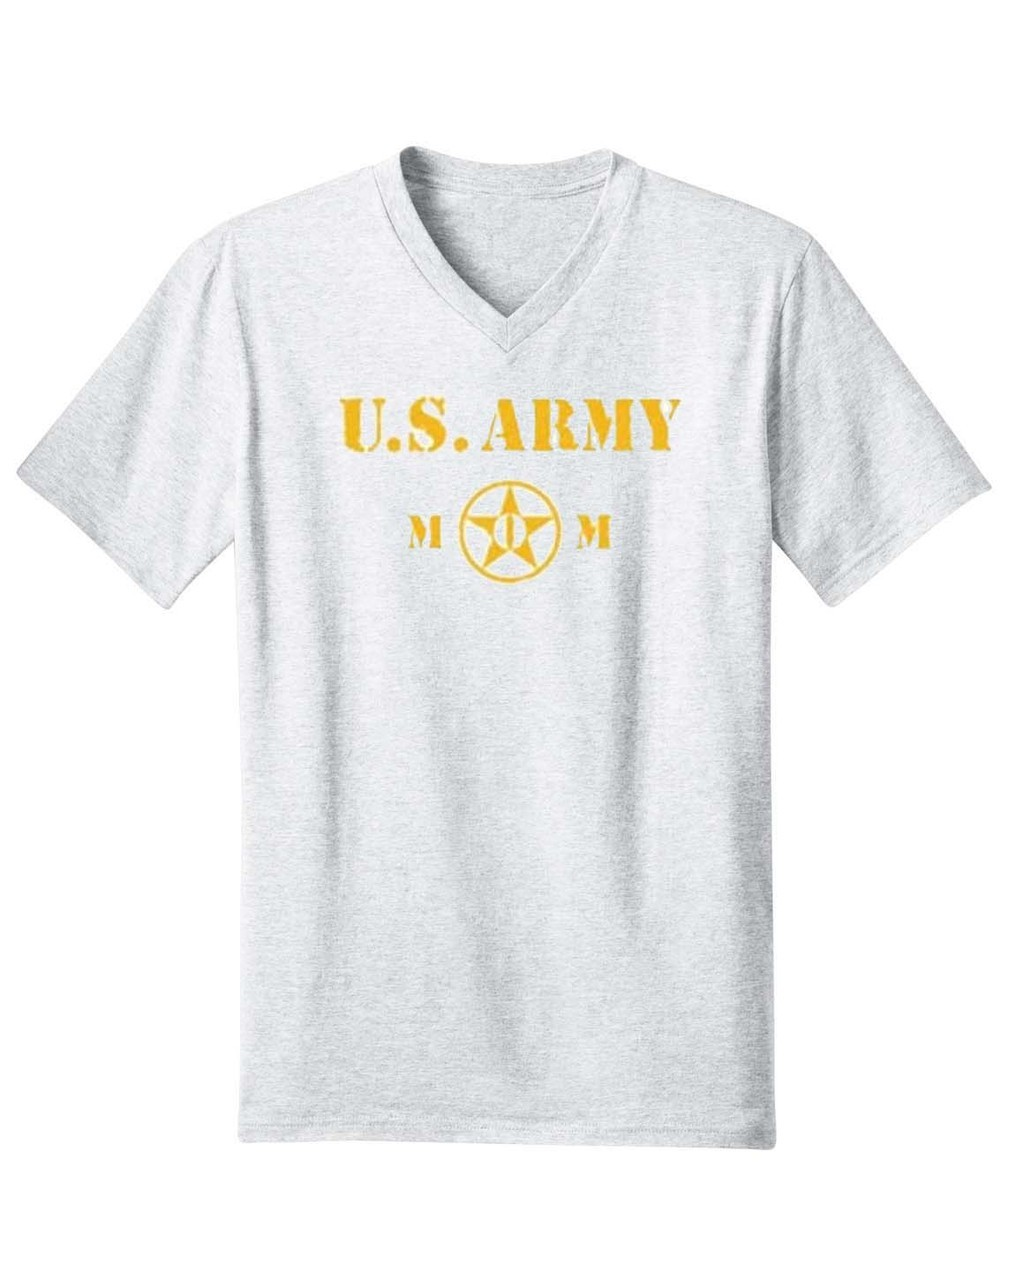 U.S. Army Mom T-Shirt